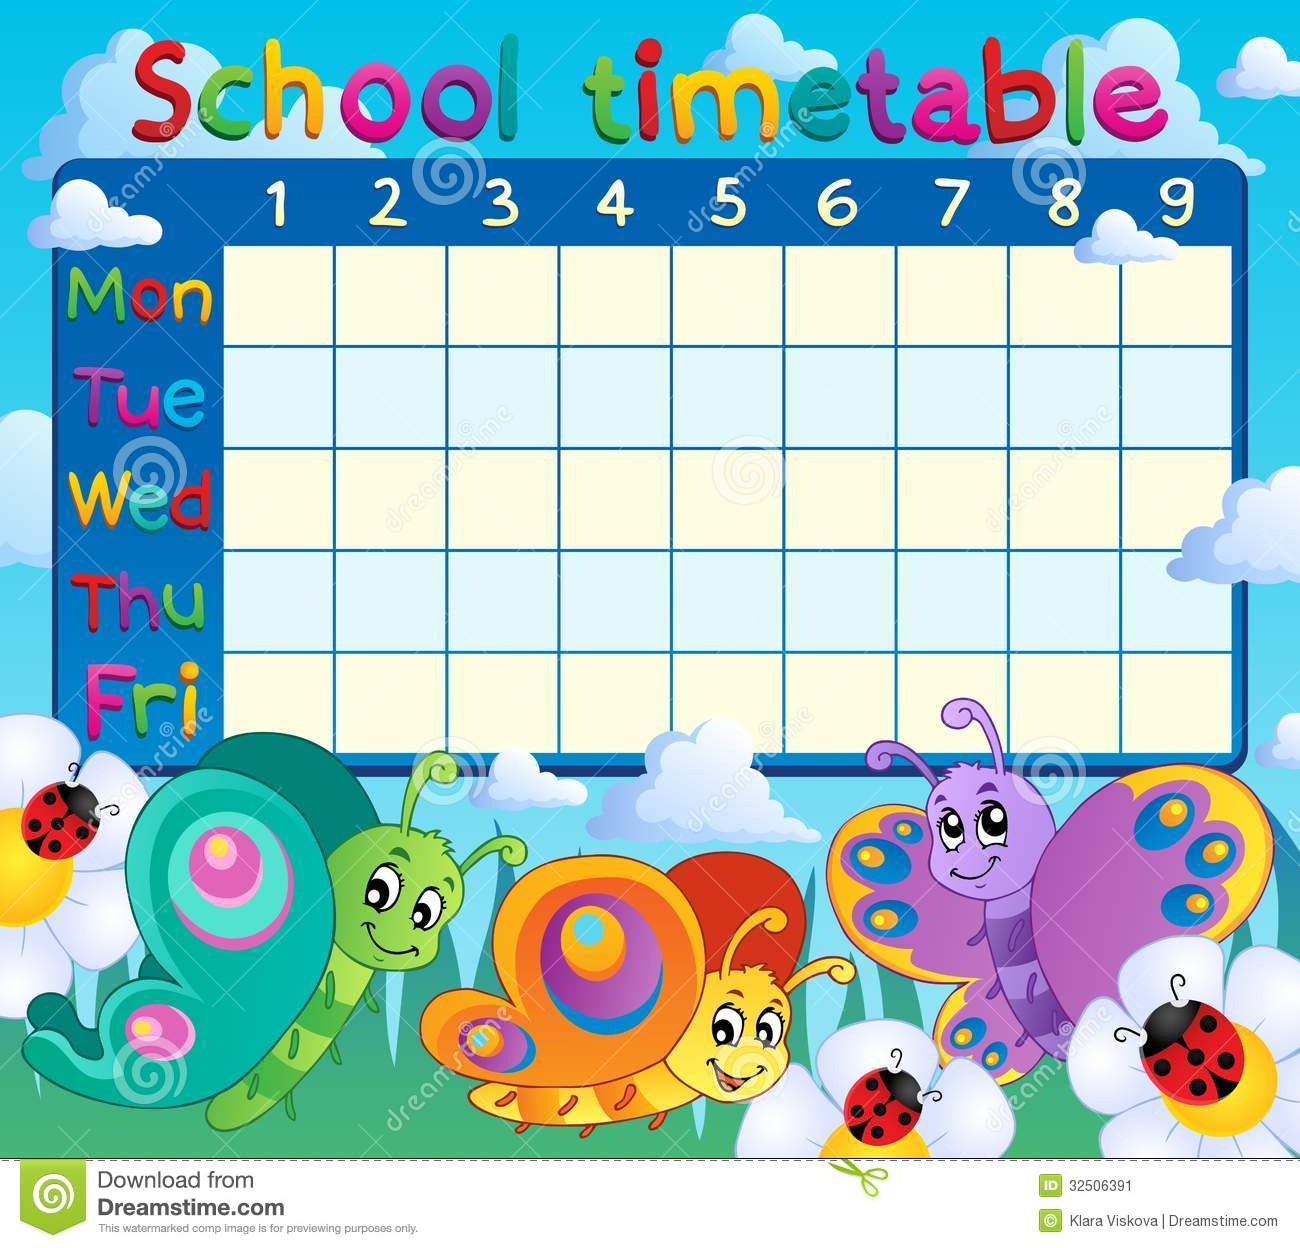 Quotes On School Time Table: School Timetable Topic Image 7 Stock Image